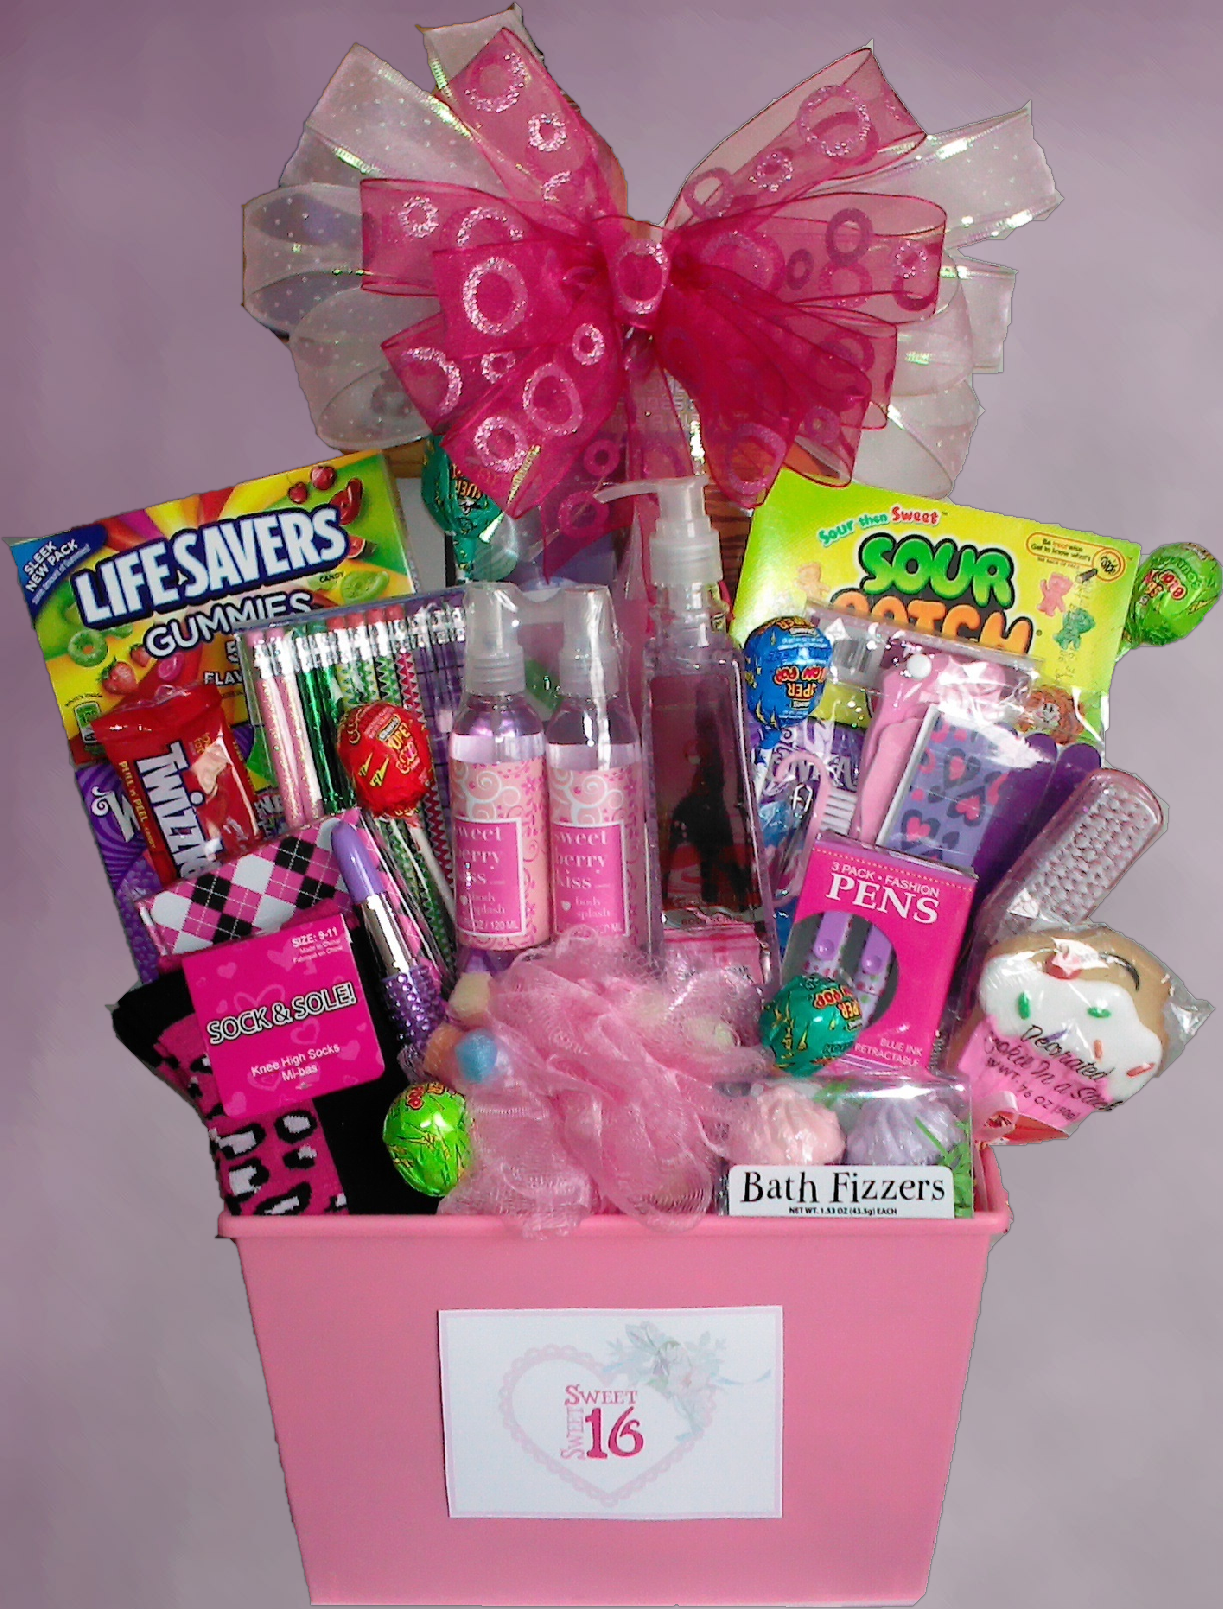 sweet 16 basket/ quinceanera gift basket! becoming a teenager is a